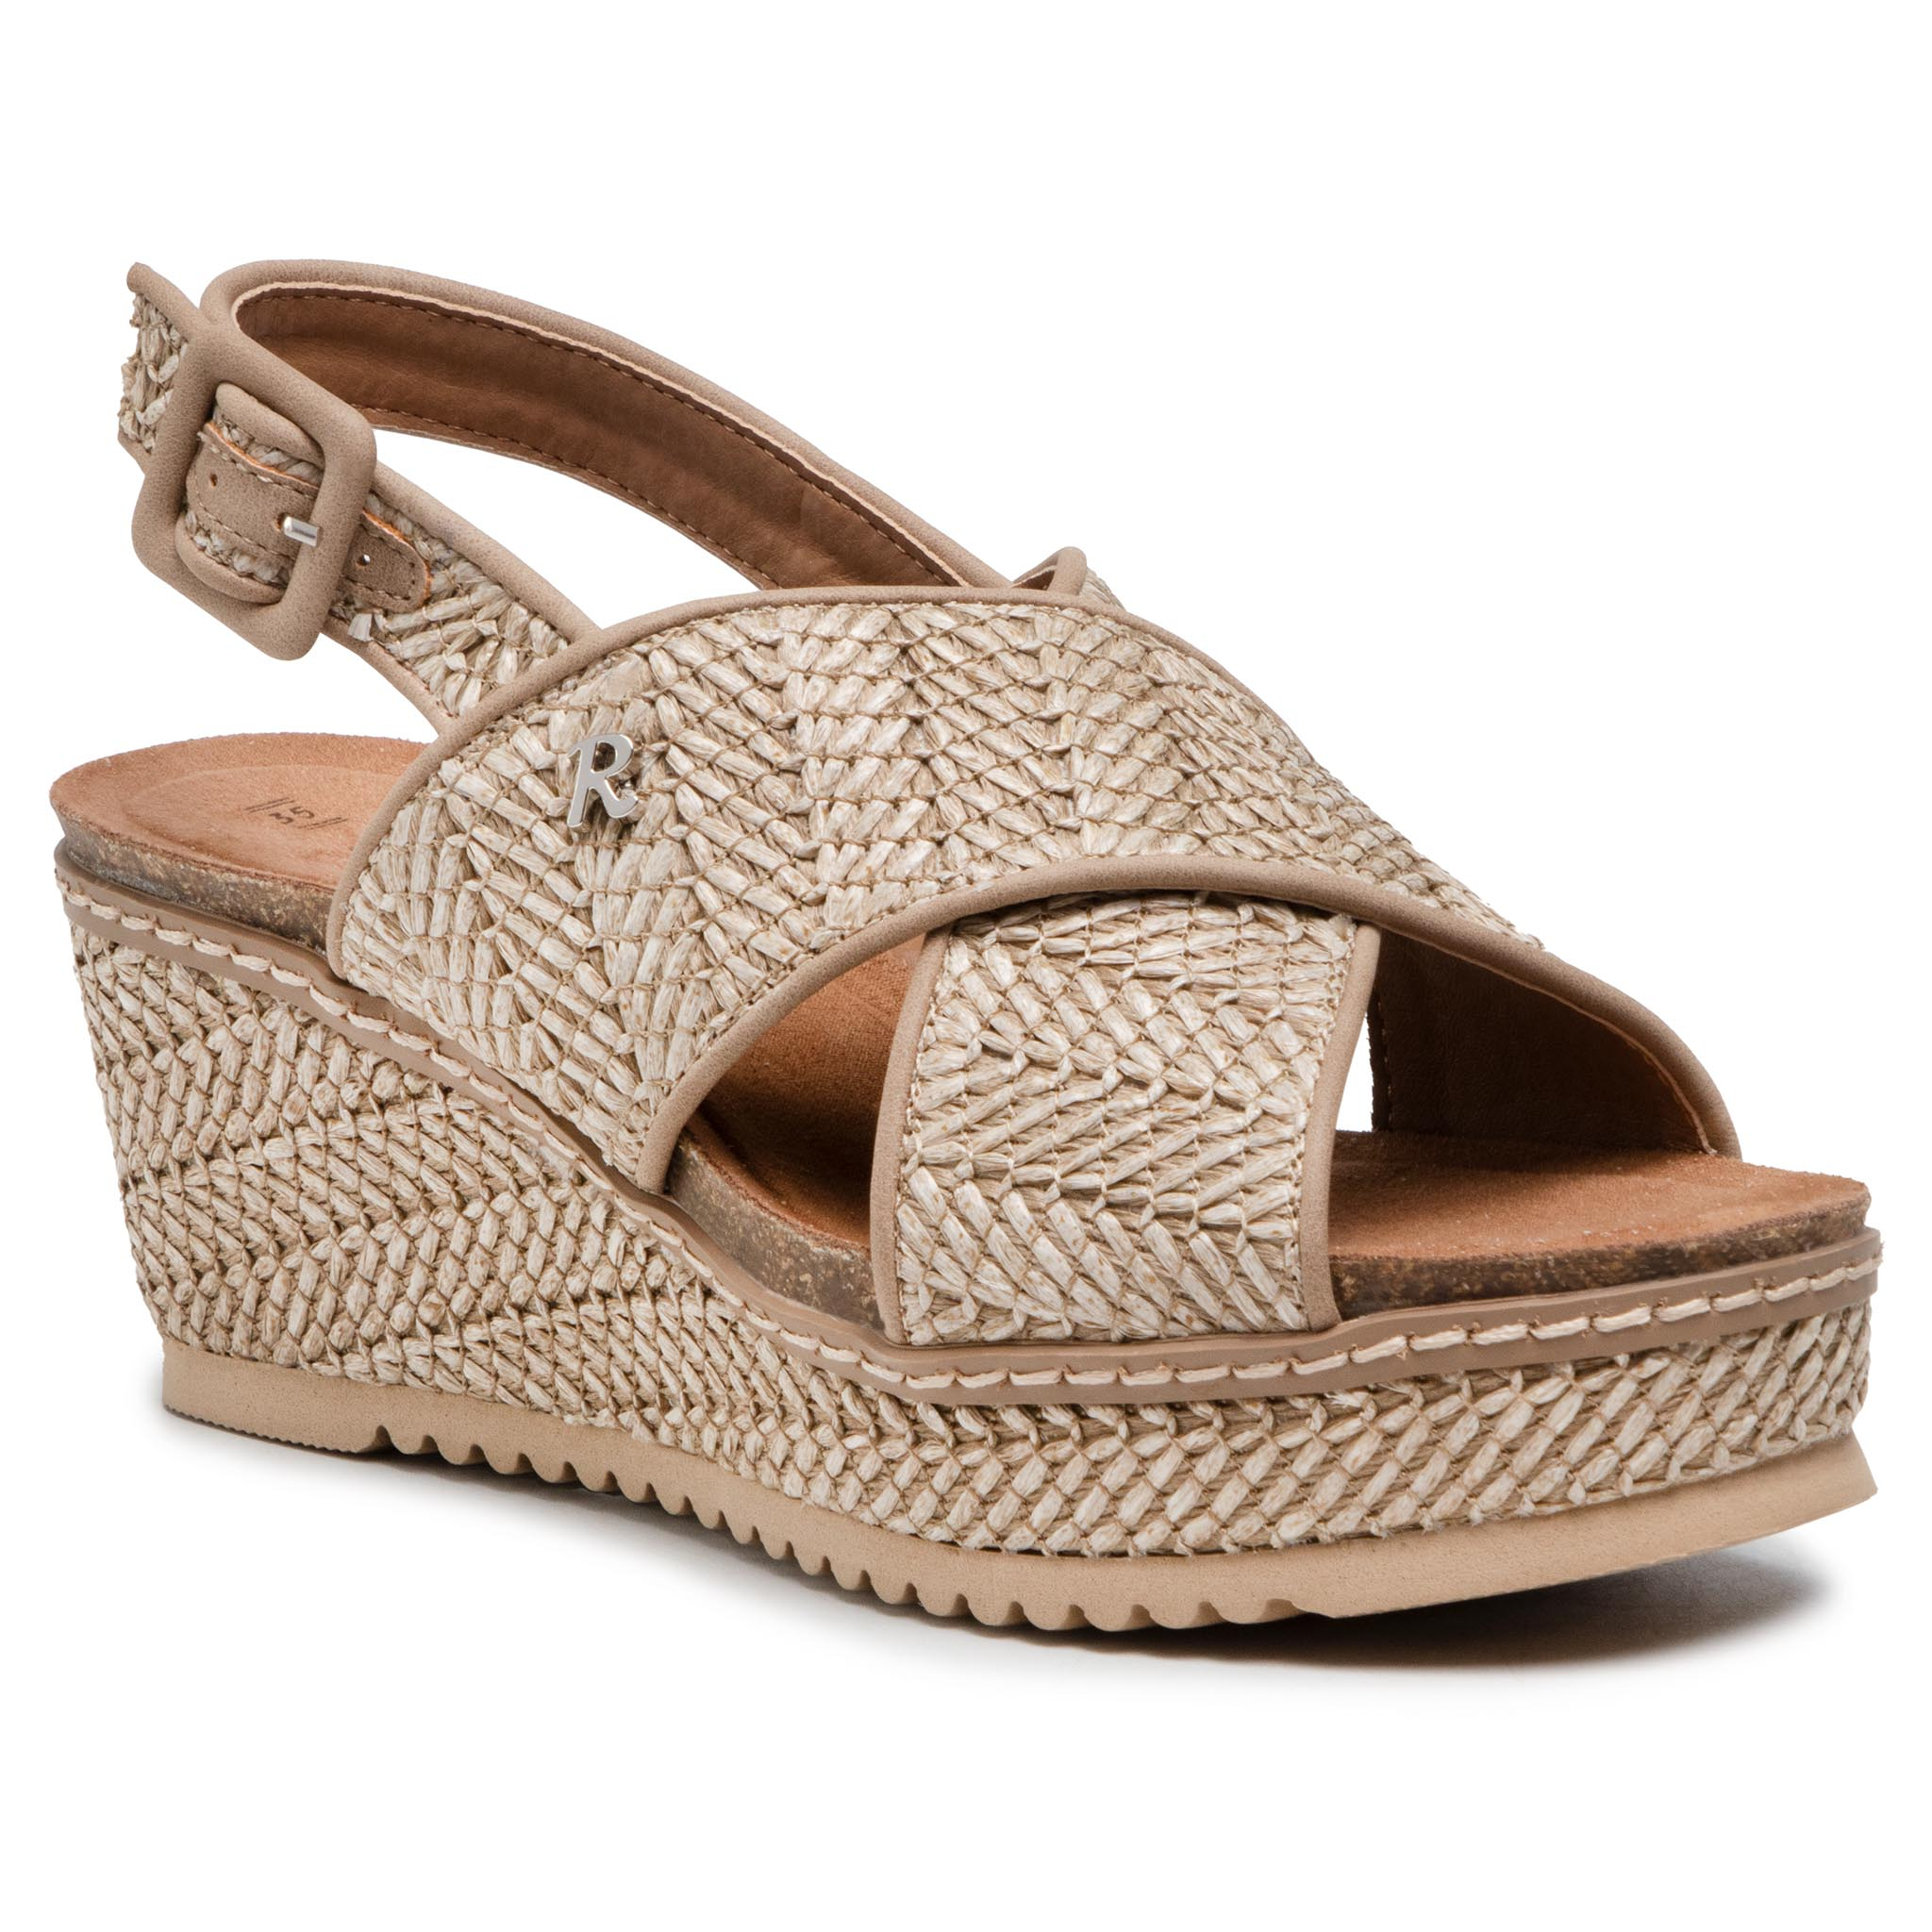 Image of Espadrilles REFRESH - 72714 Taupe